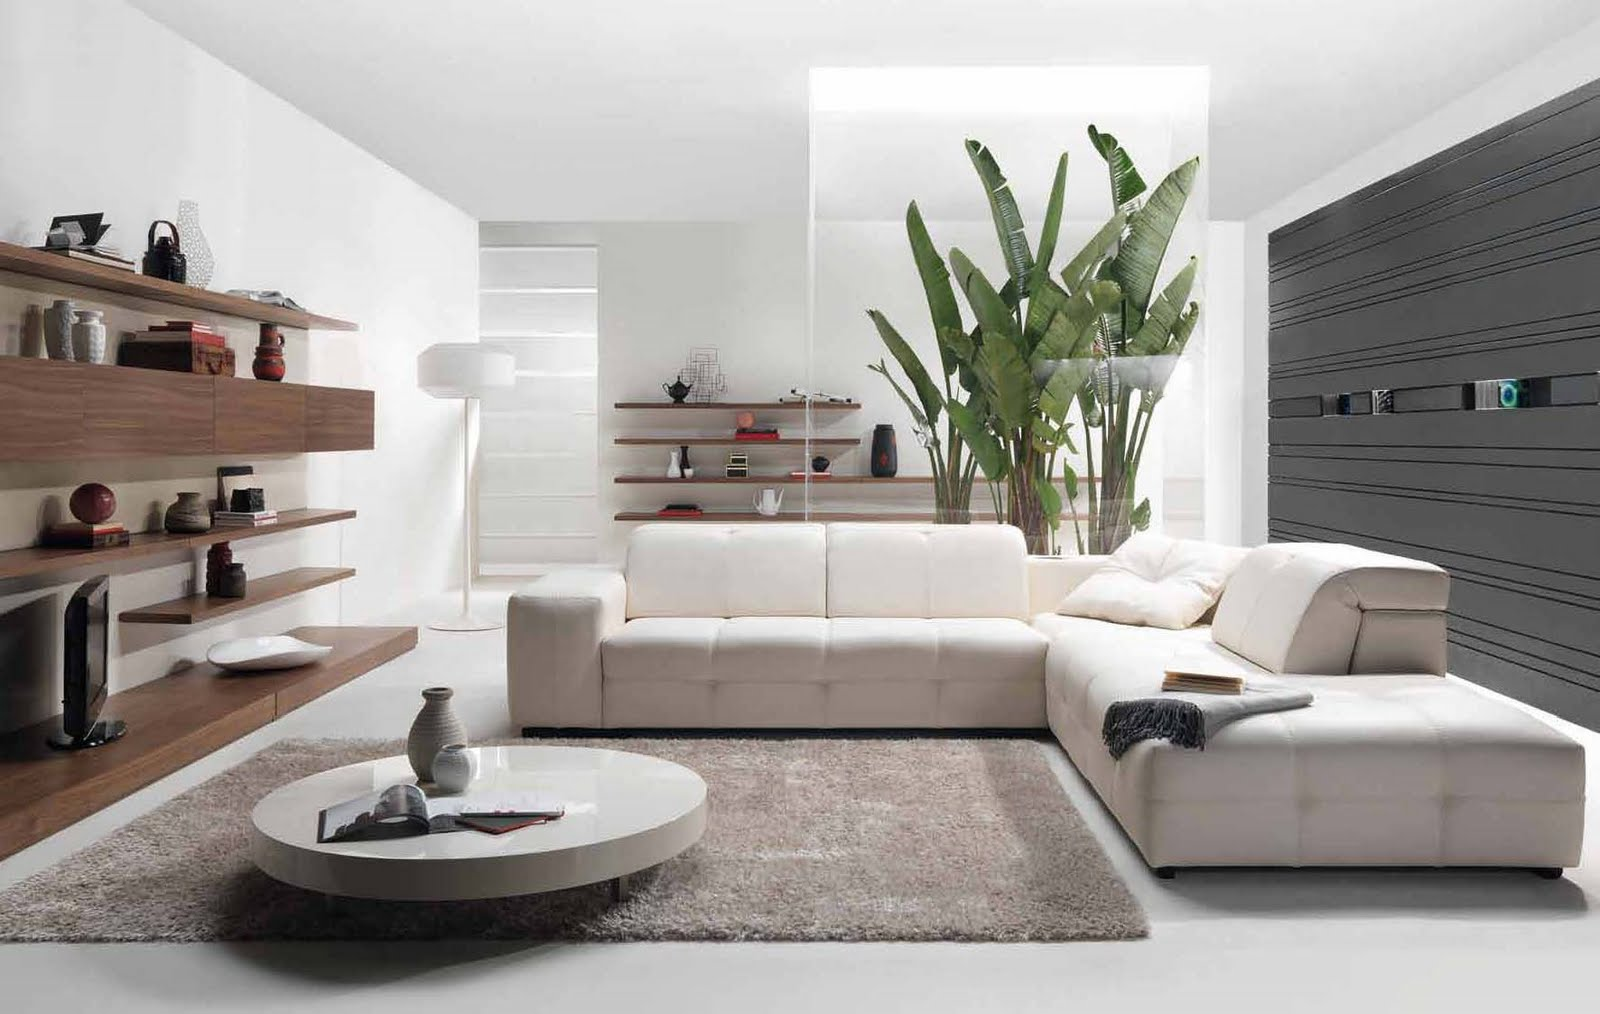 Modern home interior furniture designs diy ideas for Sitting room furniture ideas